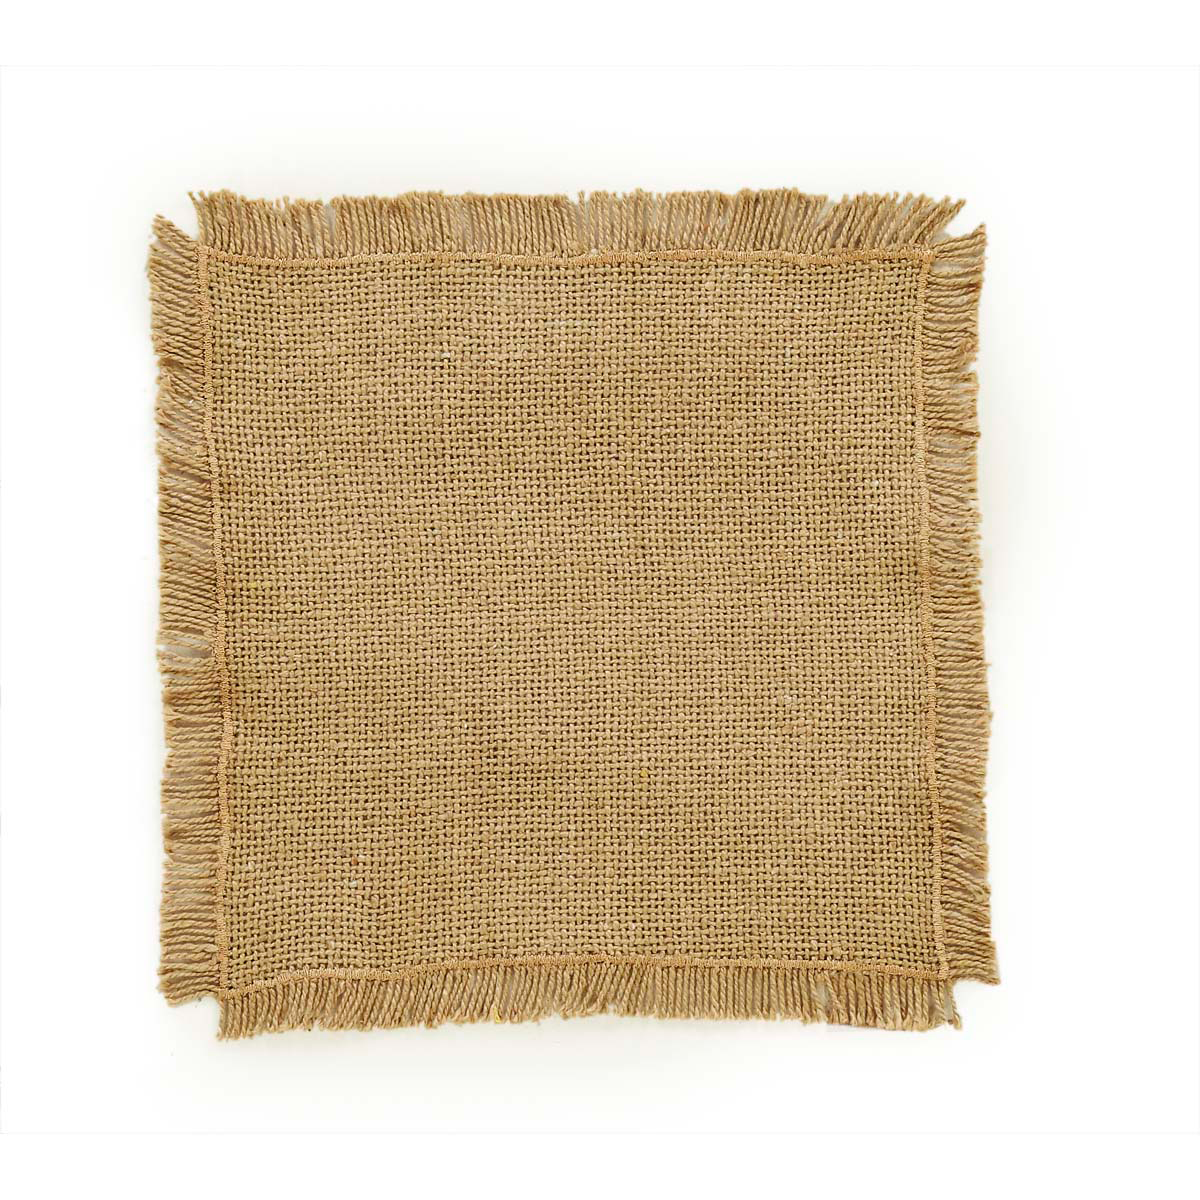 BURLAP NATURAL Tablemat Fringed - Set of 6 - 9x9 - Soft Cotton - VHC Brands